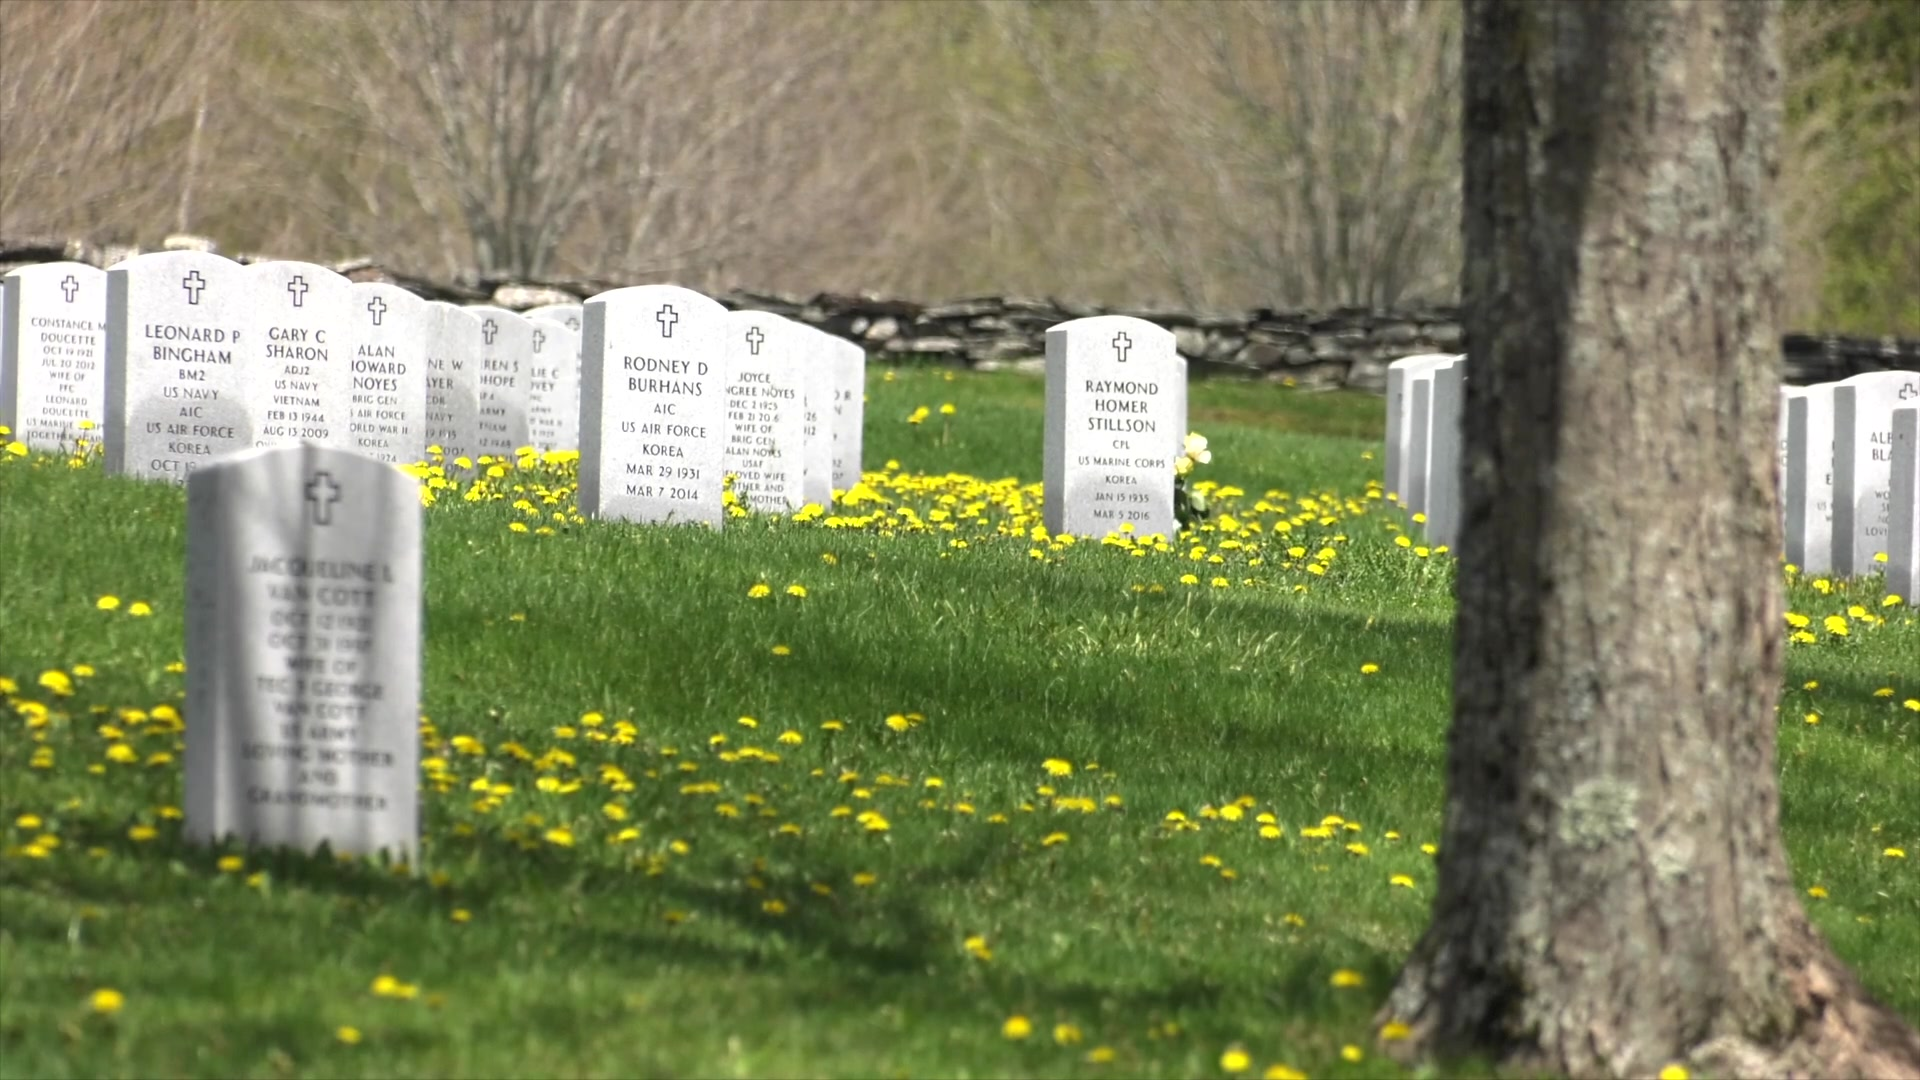 Senior leaders for the Vermont National Guard share thoughts about Memorial Day.